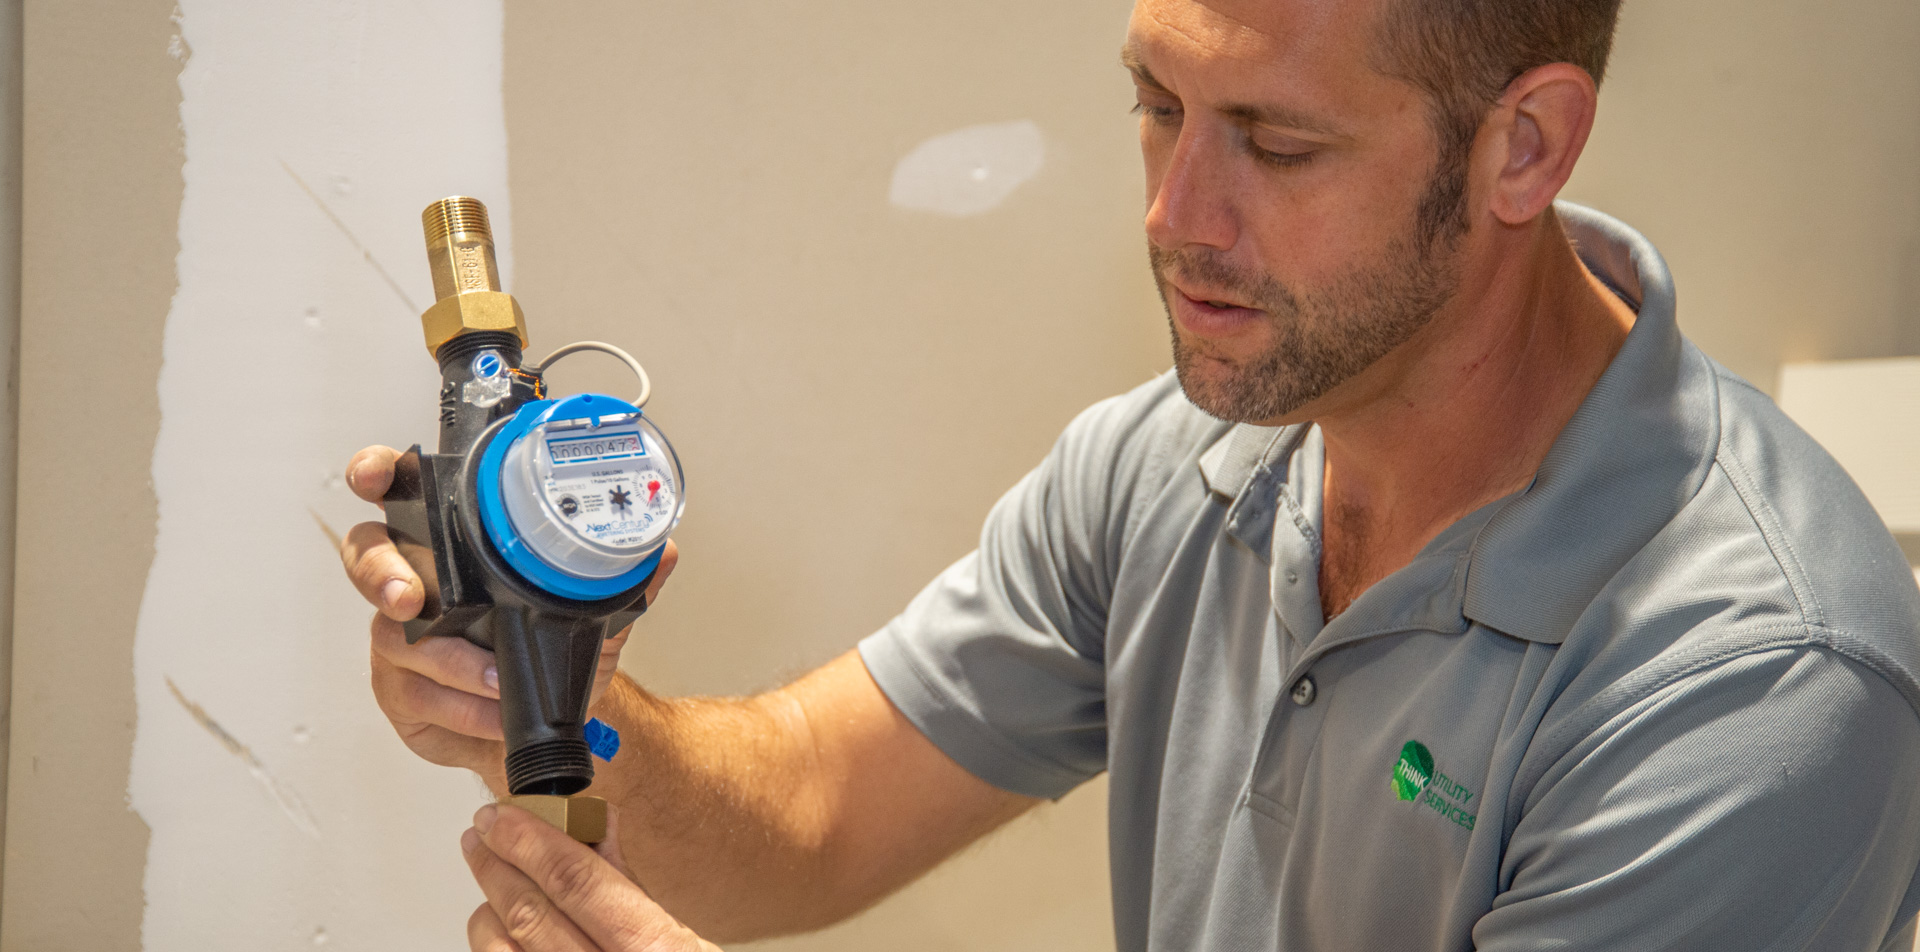 Think Utility Services - Submeter Technicians Installation